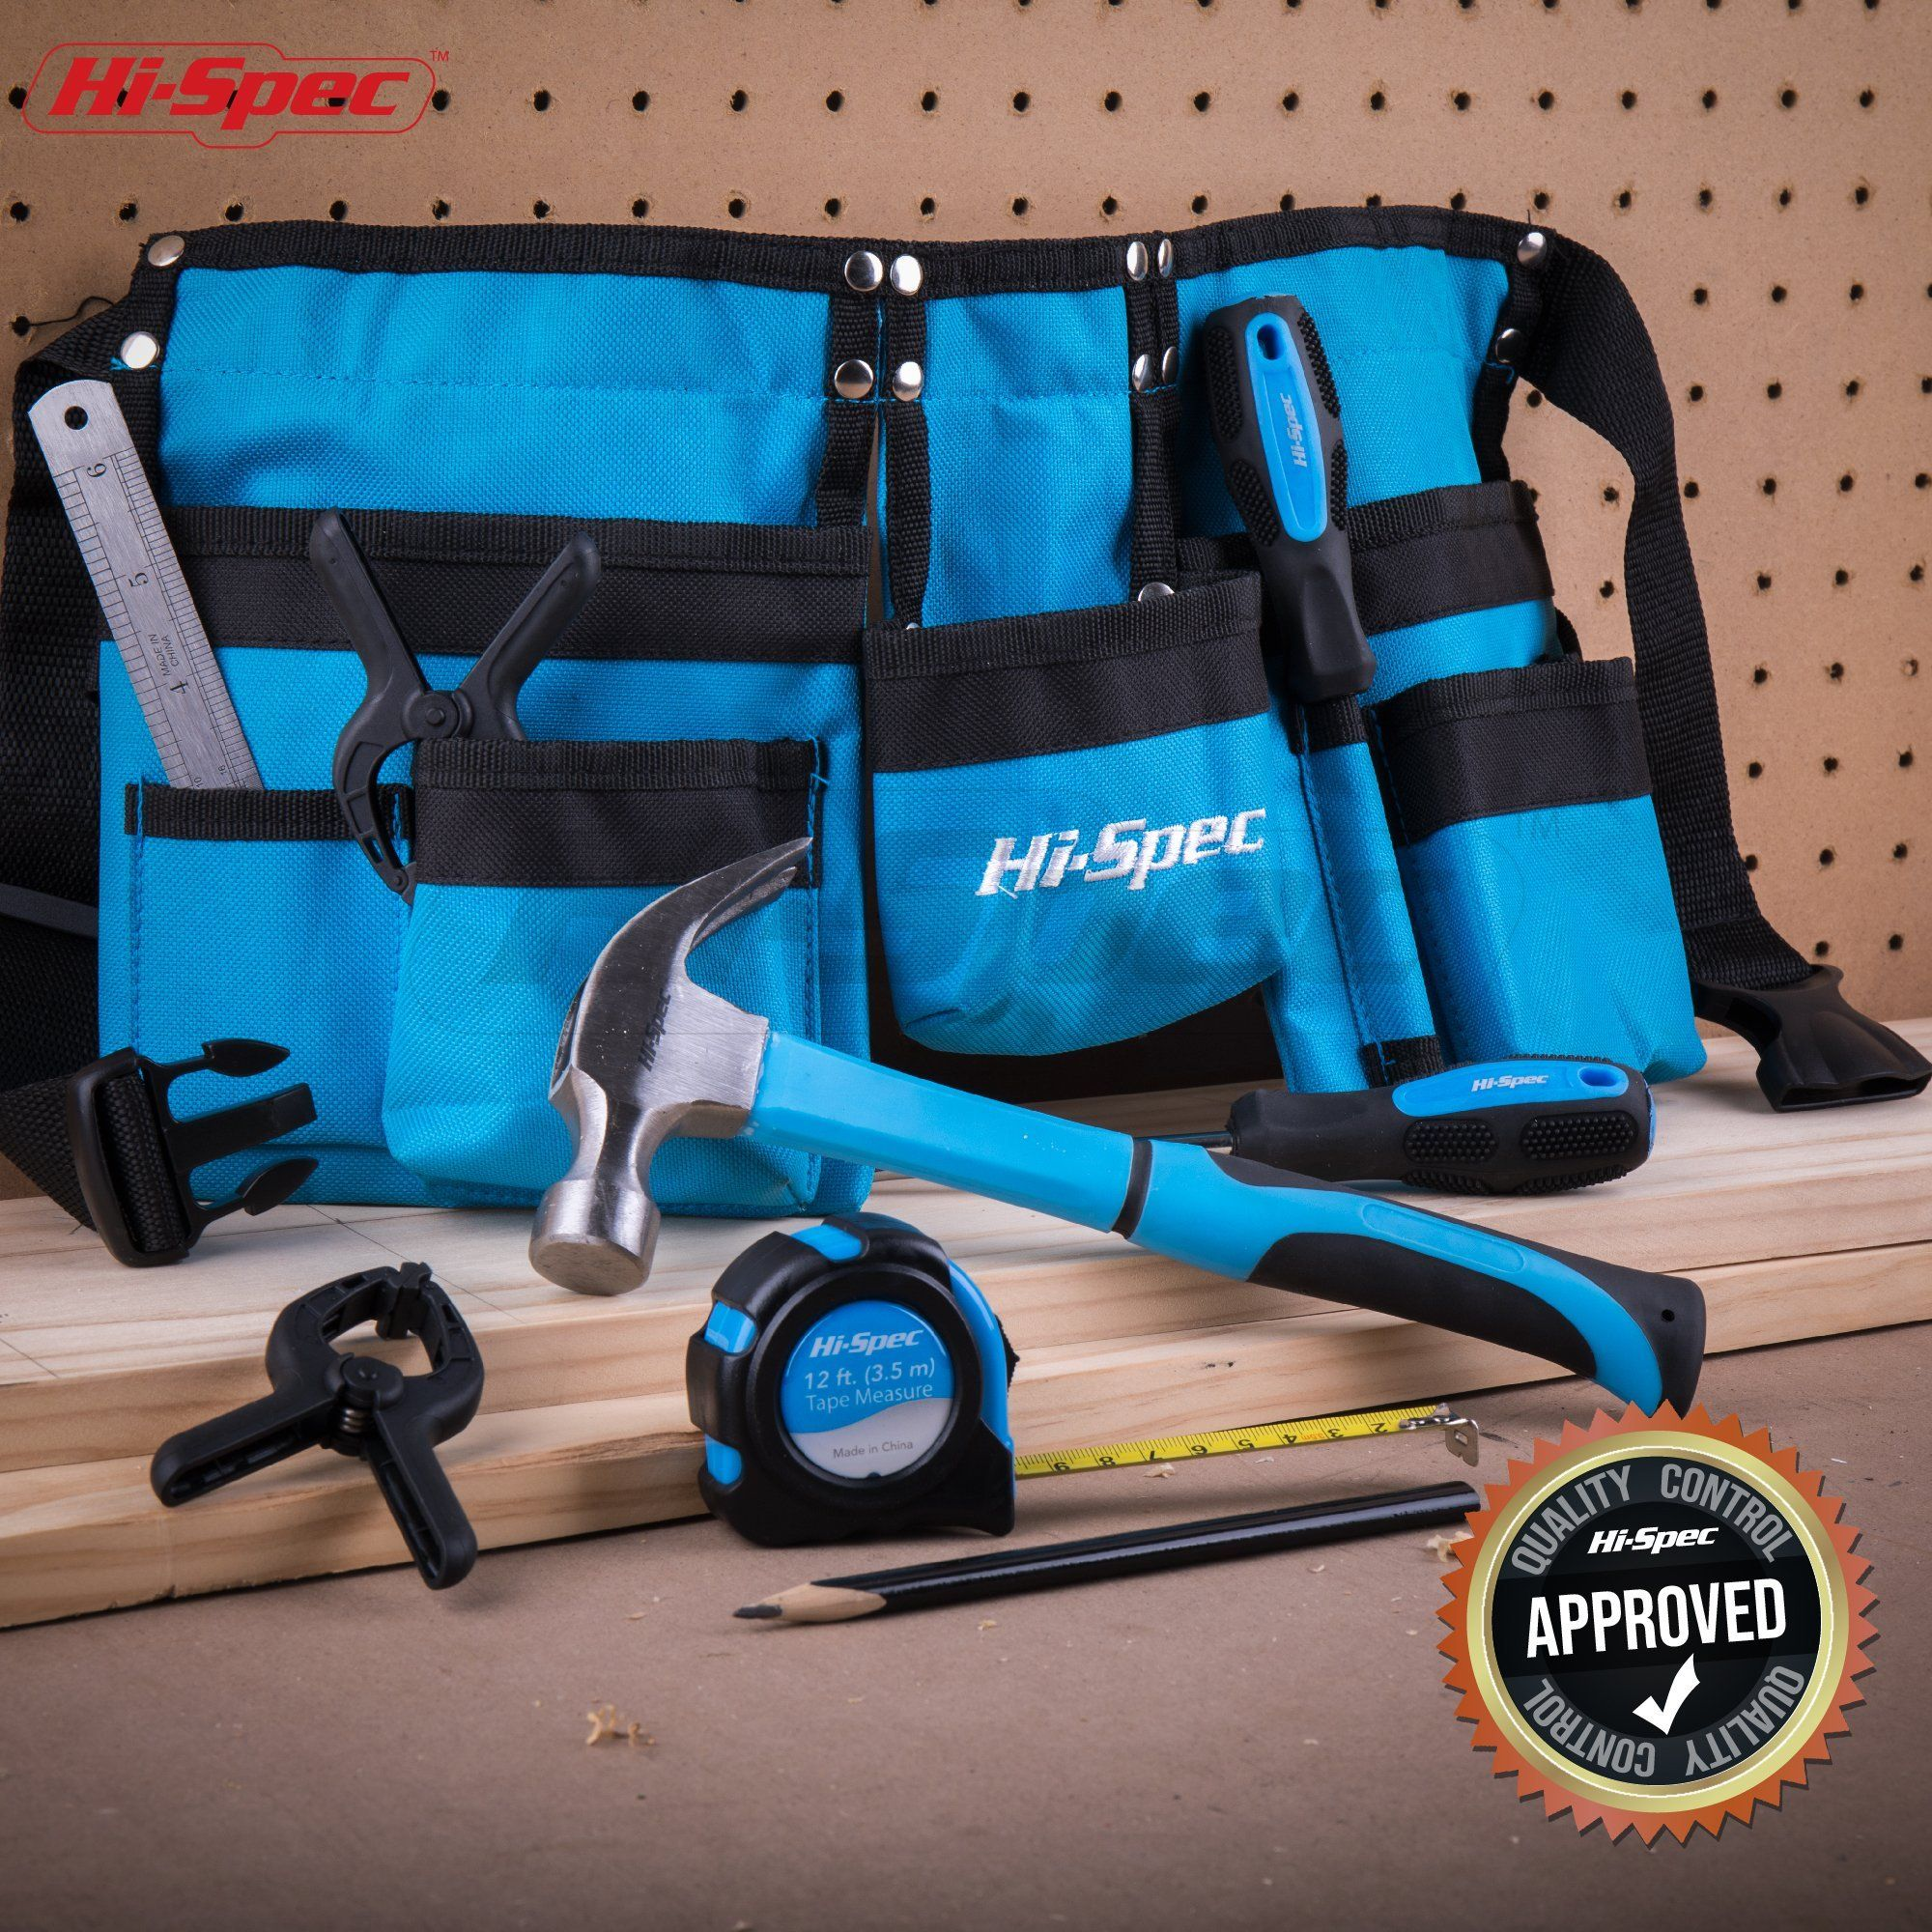 Hispec 12 piece young builders tool set and tool belt with